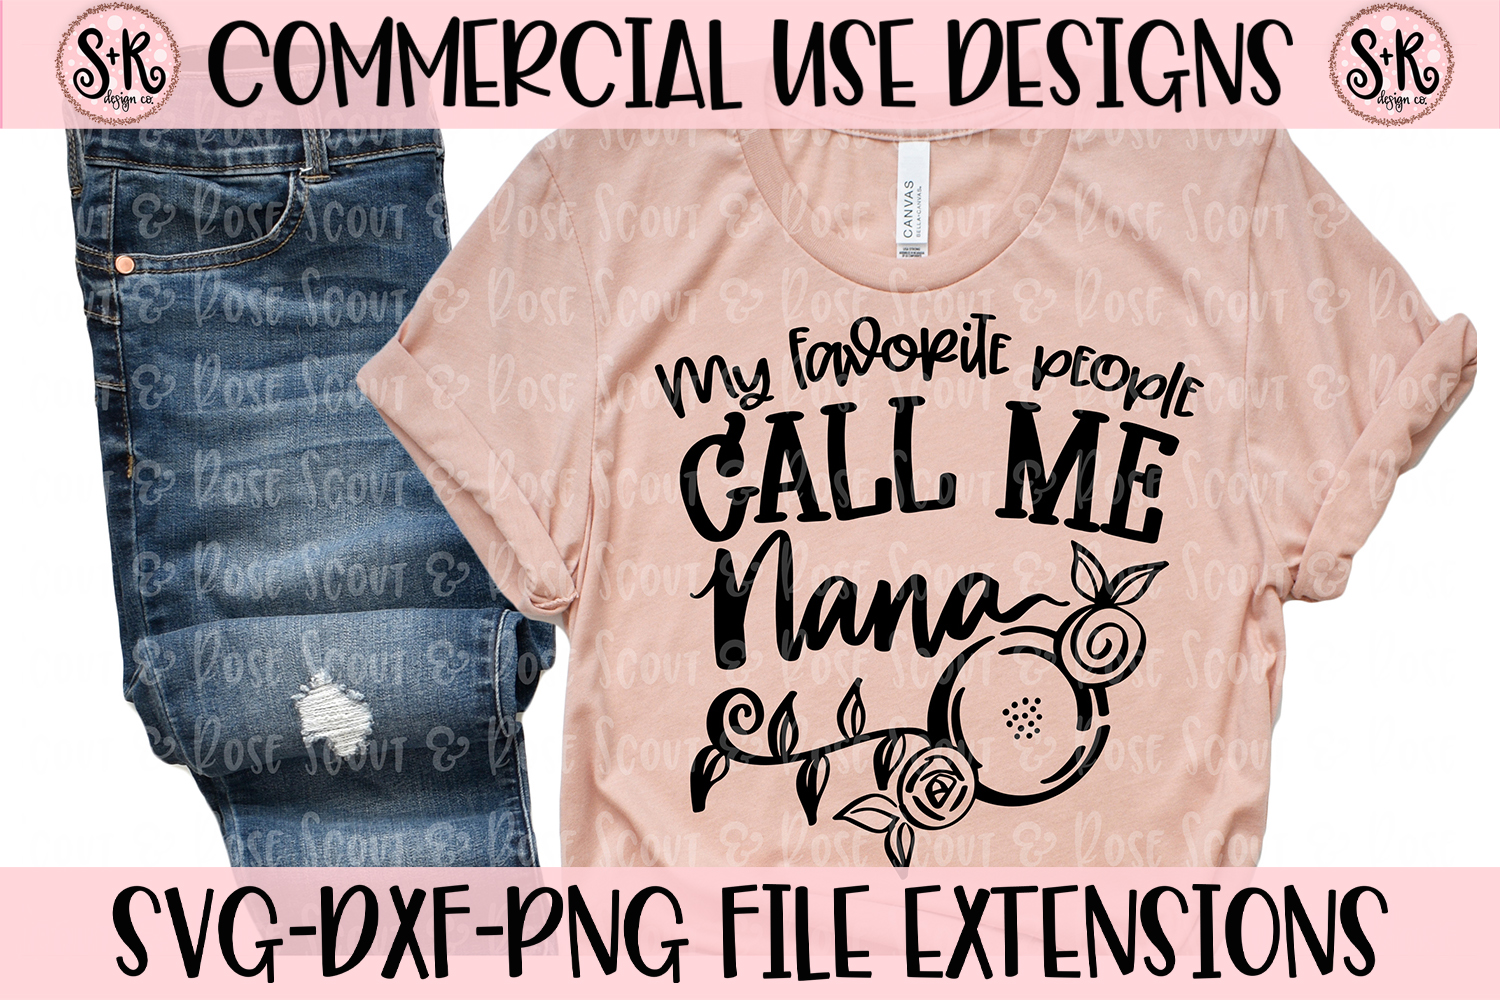 My Favorite People Call Me Nana SVG DXF PNG example image 1